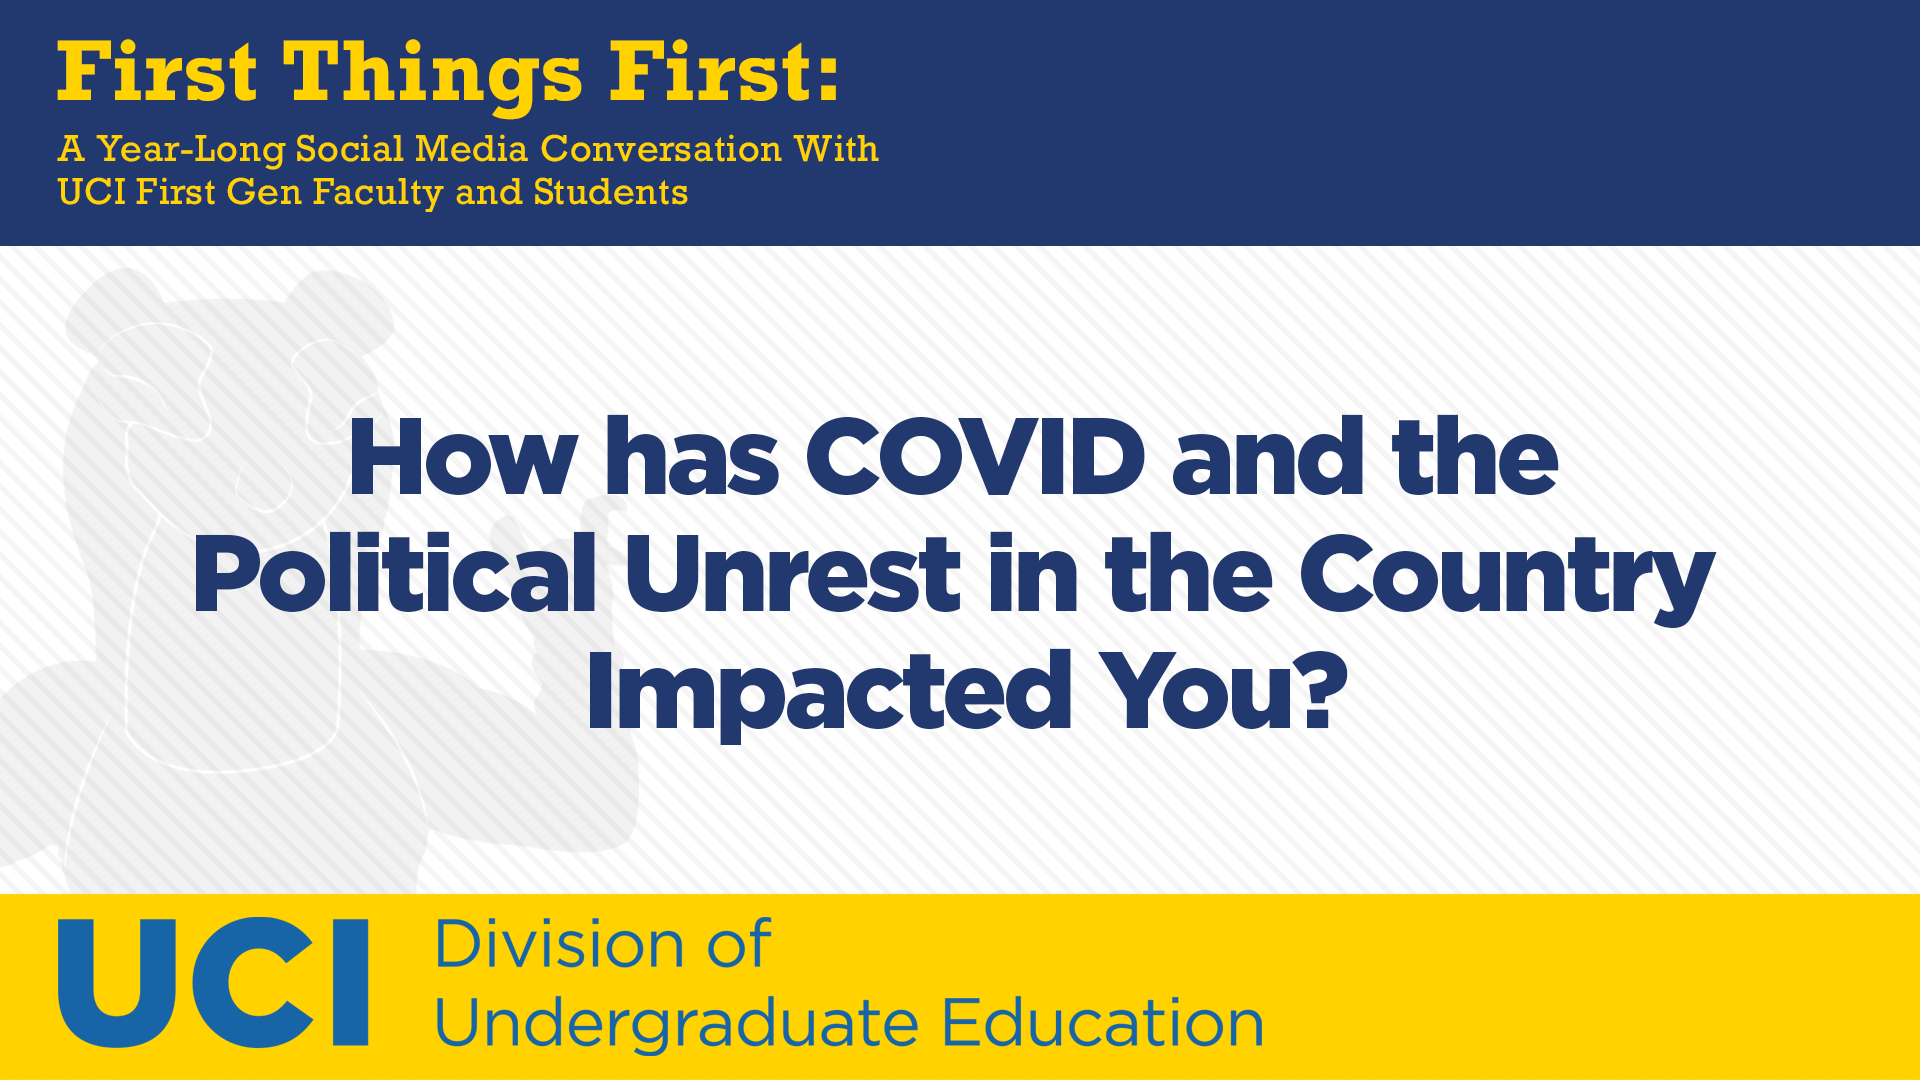 How has COVID and the Political Unrest in the Country Impacted You?